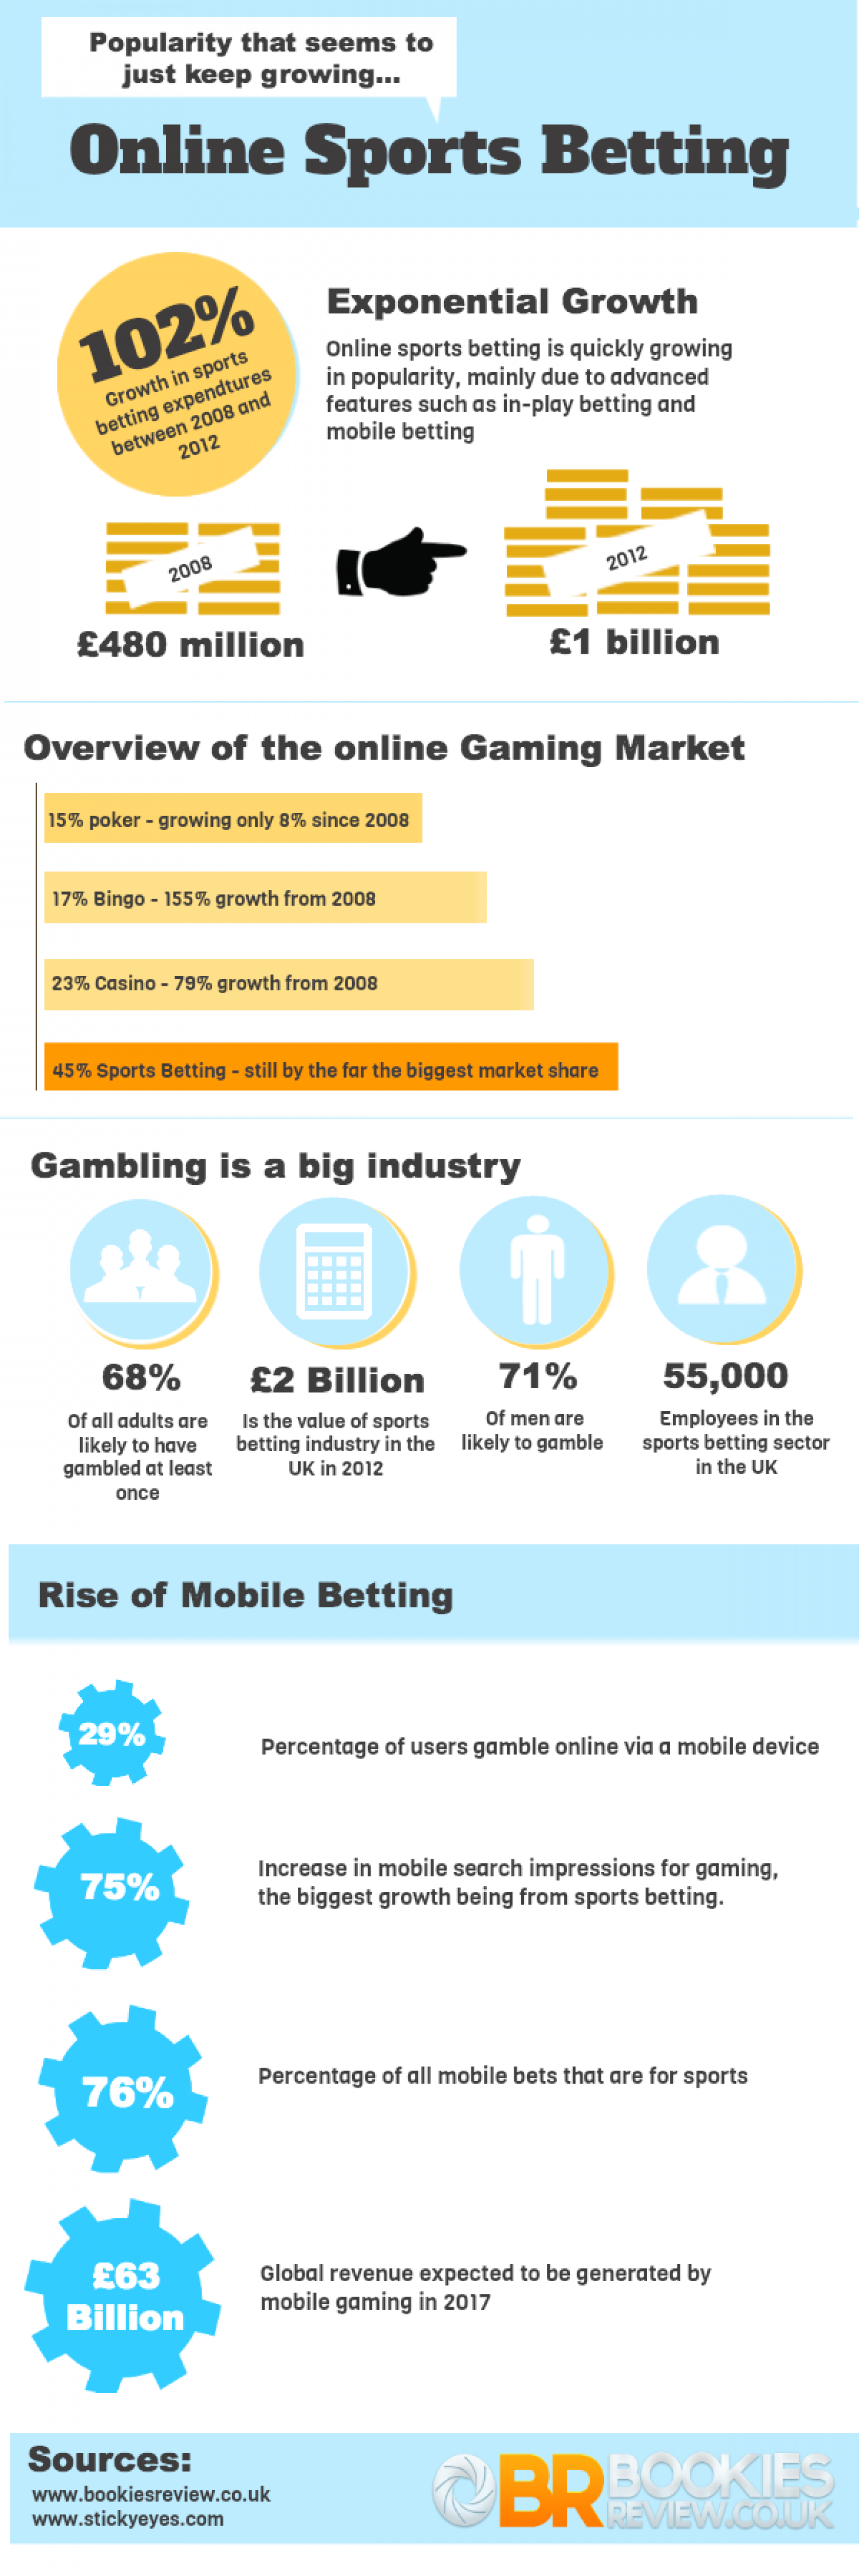 Bookies Review Infographic